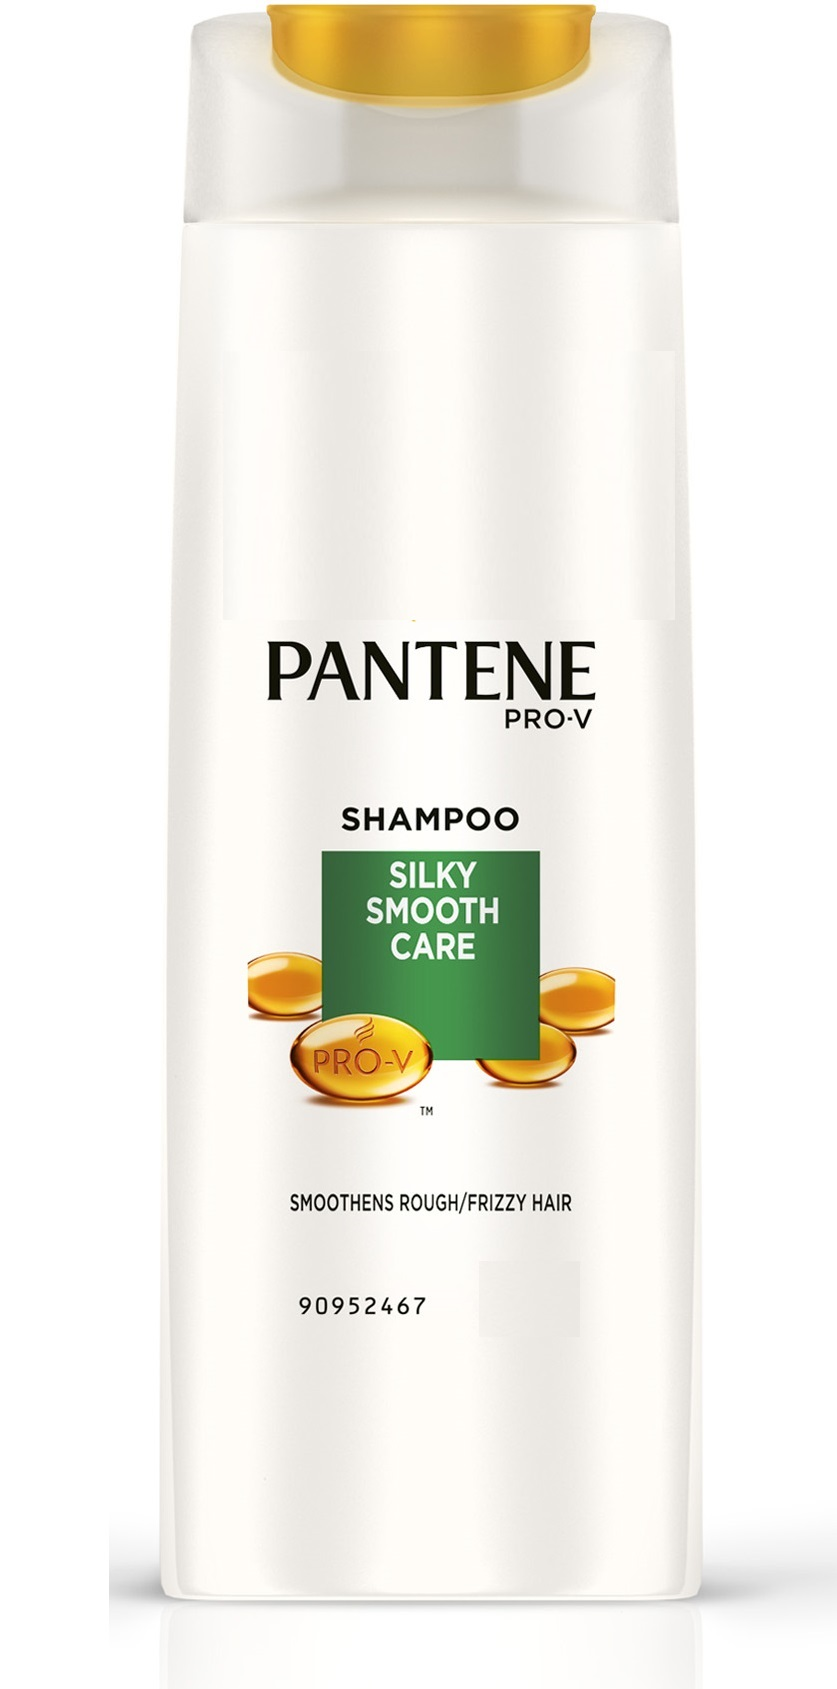 Pantene Pro-V Silk Smooth Care Shampoo  available at Nykaa for Rs.50